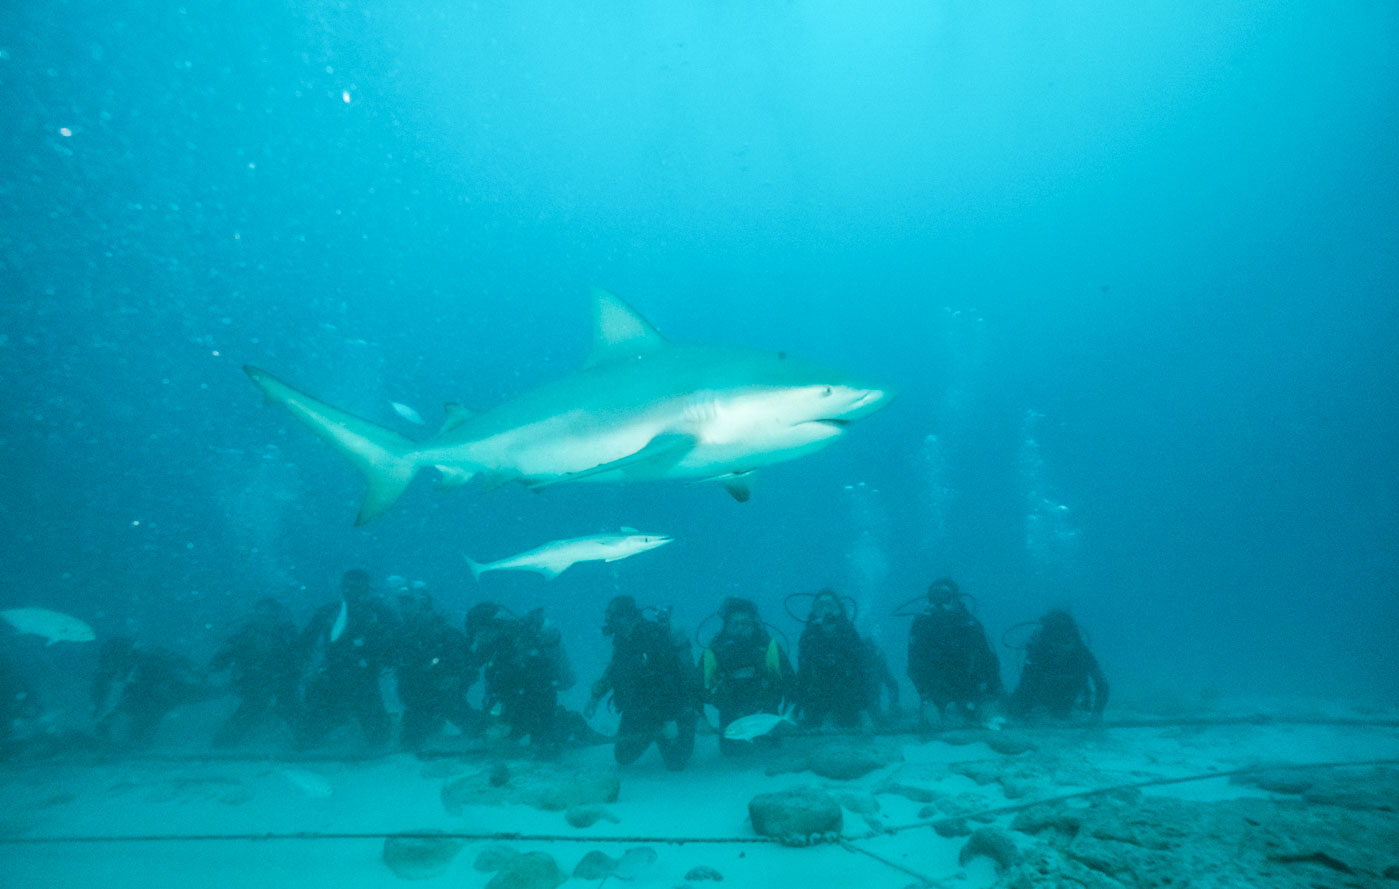 Scuba_Diving_With_Bull_Sharks_In_Playa_Del_Carmen_Mexico_Qintana_Roo_Yucatan_Peninsula_Riviera_Maya_Cozumel_Blog_The_Sassy_Pilgrim_Indian_Solo_Traveler_Girl_Scuba_Diver_Inia_Travel_Blogger_